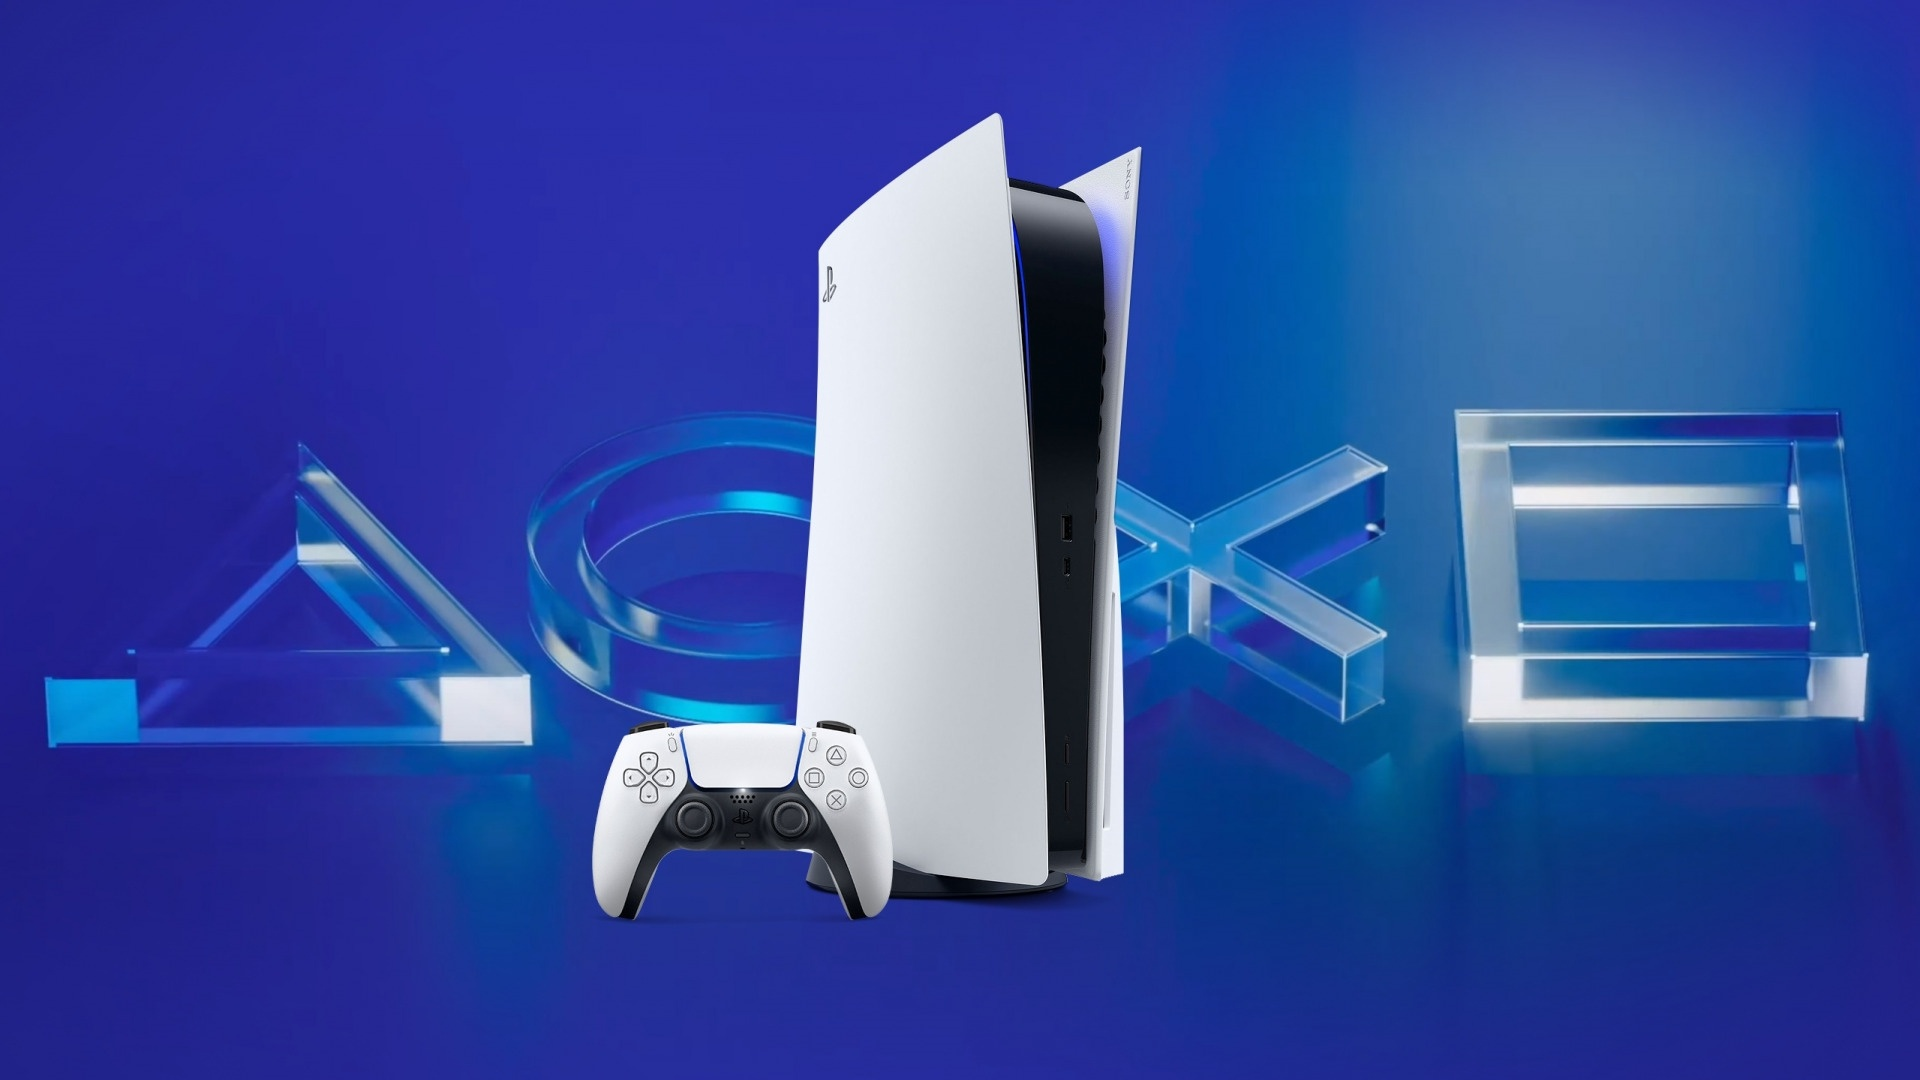 Playstation 5 Wallpaper and Background